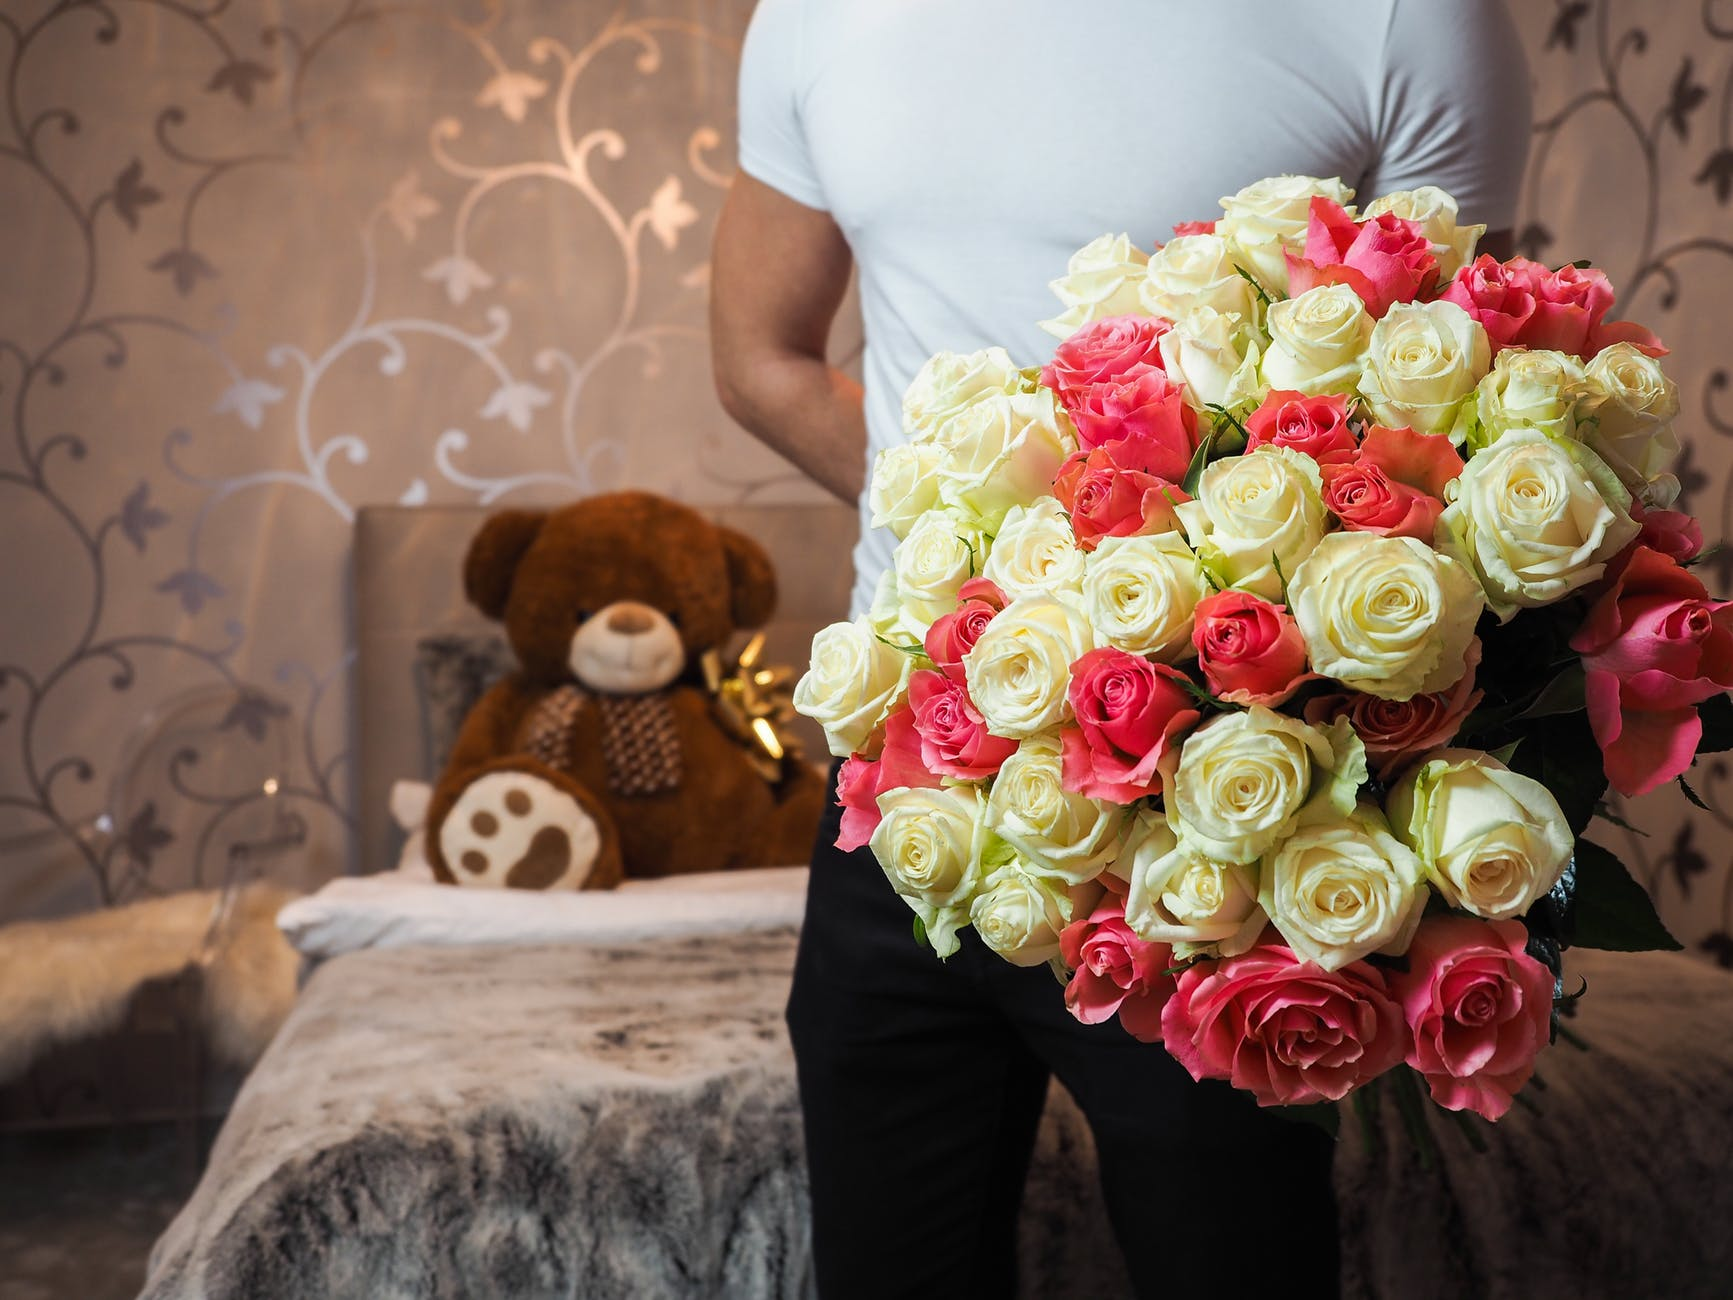 10 Bouquets That Everyone Loves